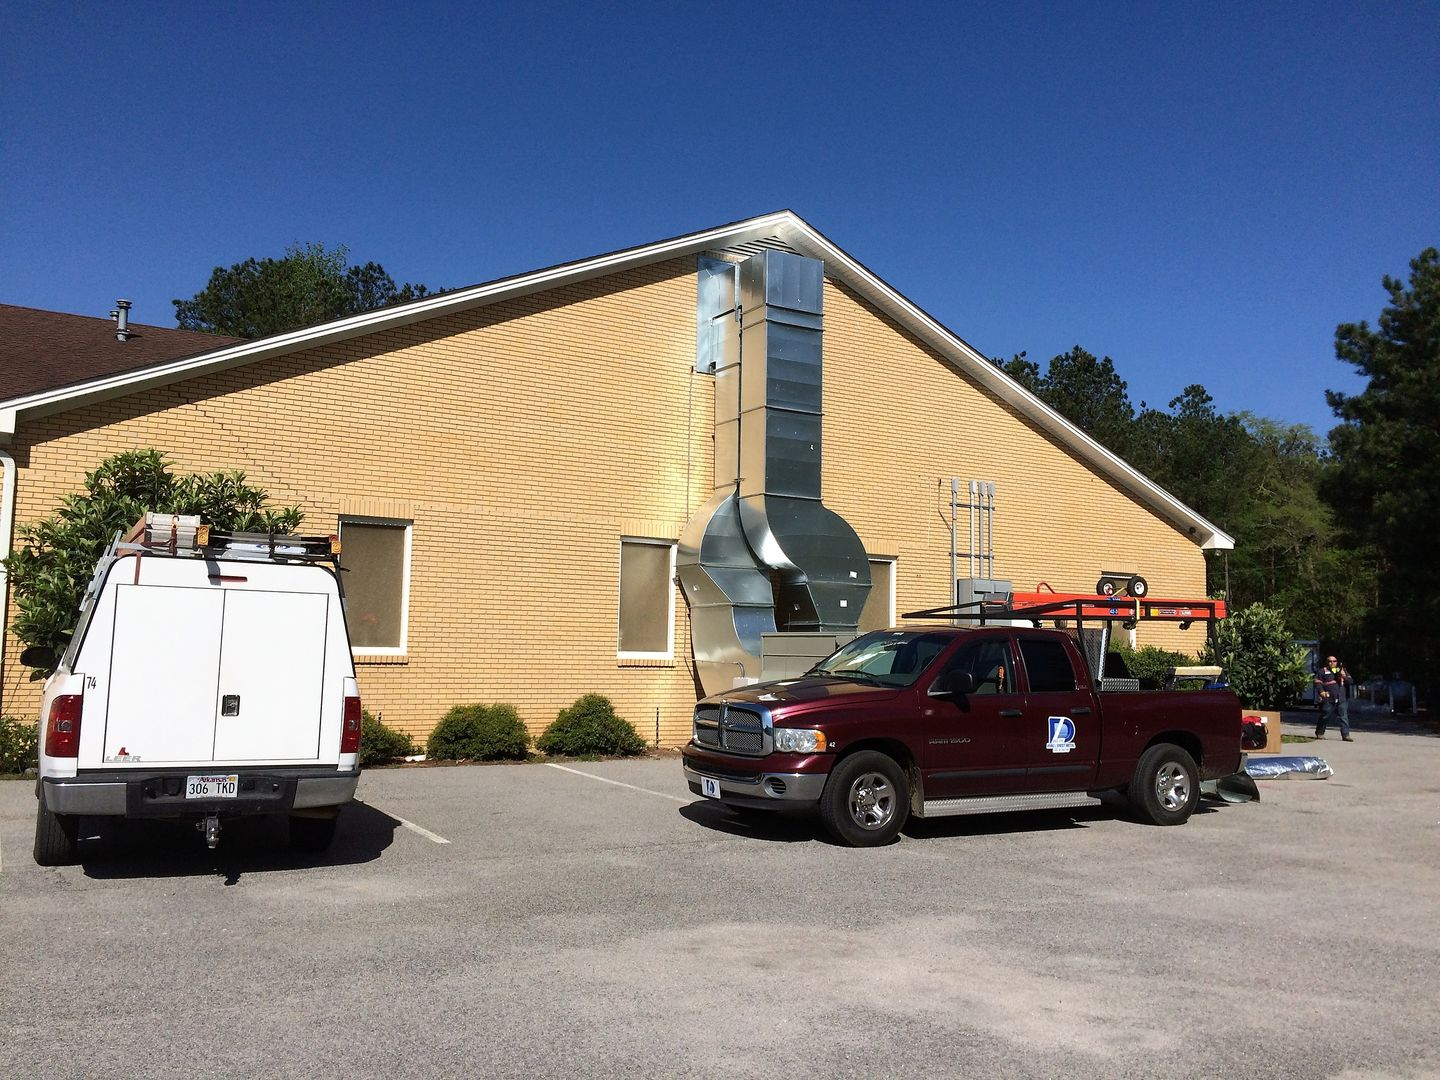 HVAC Contractors Florence SC for HVACR repair and services - D & L INC South Carolina